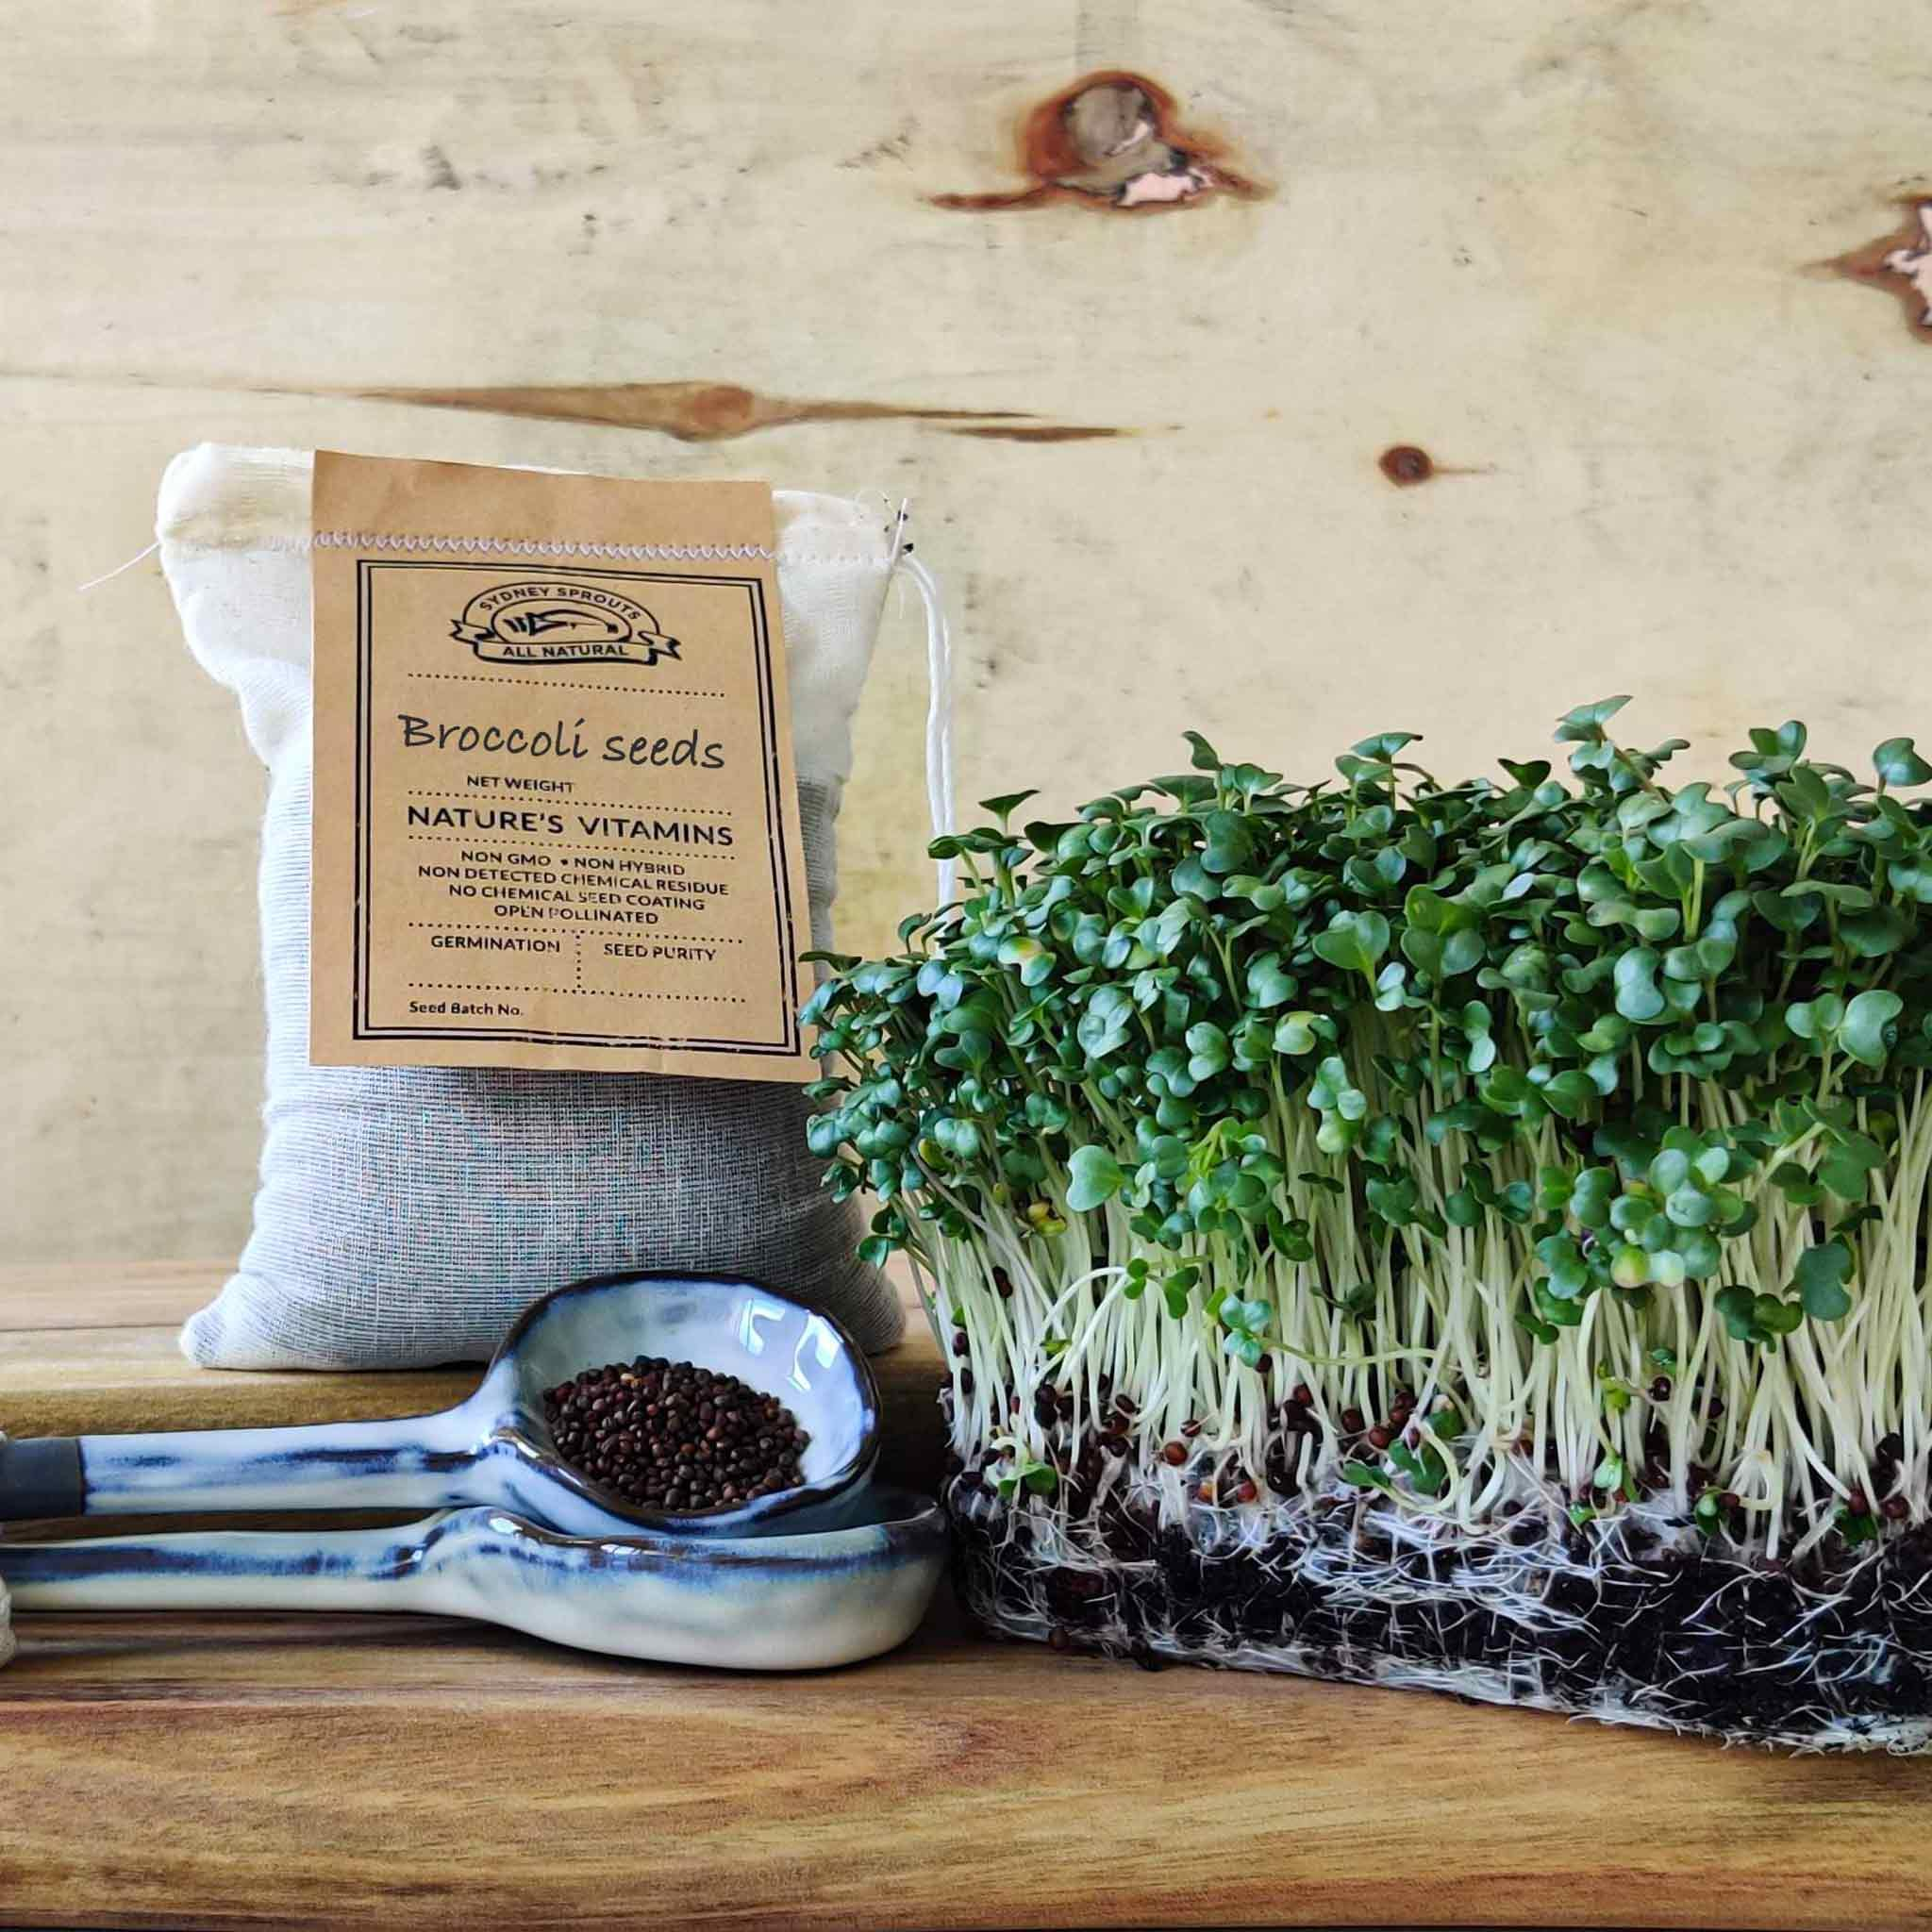 micro green Broccoli sprouting seeds - Microgreens